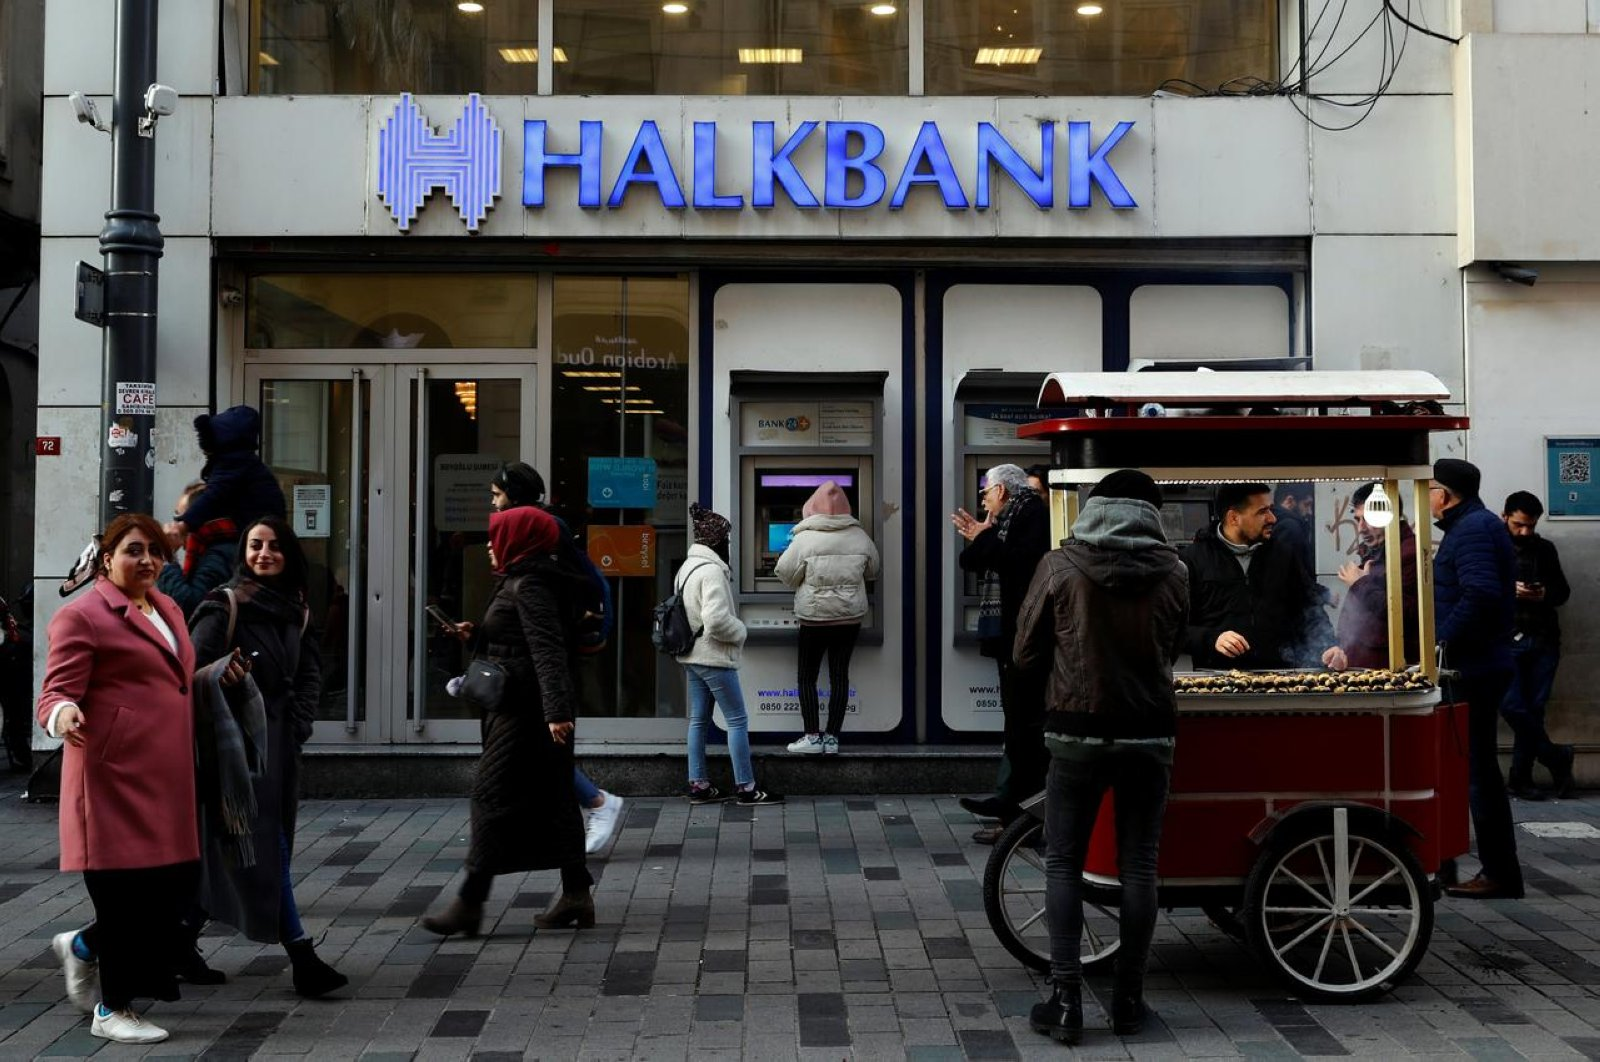 People walk past by a branch of Halkbank in central Istanbul, Turkey, January 22, 2020. (Reuters Photo)